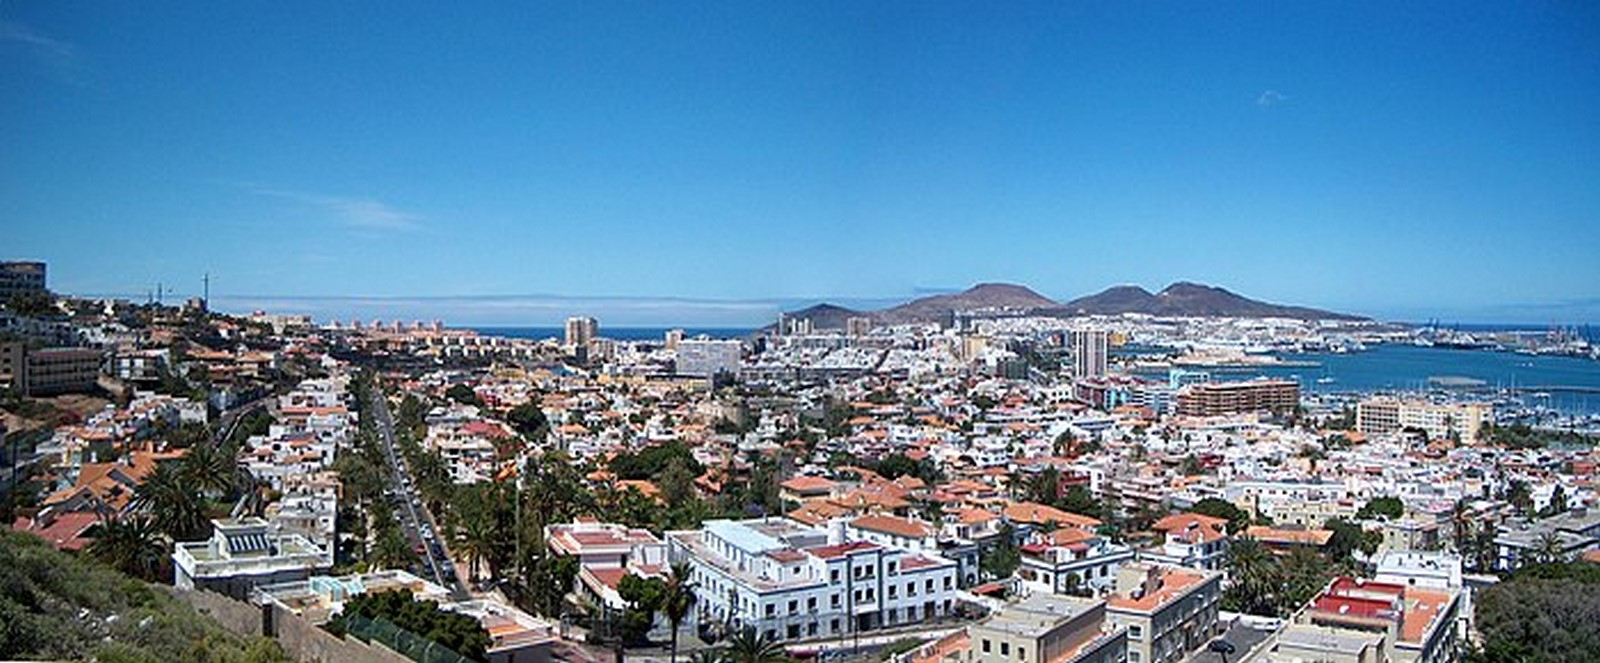 Architecture of Cities: Las Palmas: One of the largest cities in Spain Sheet1